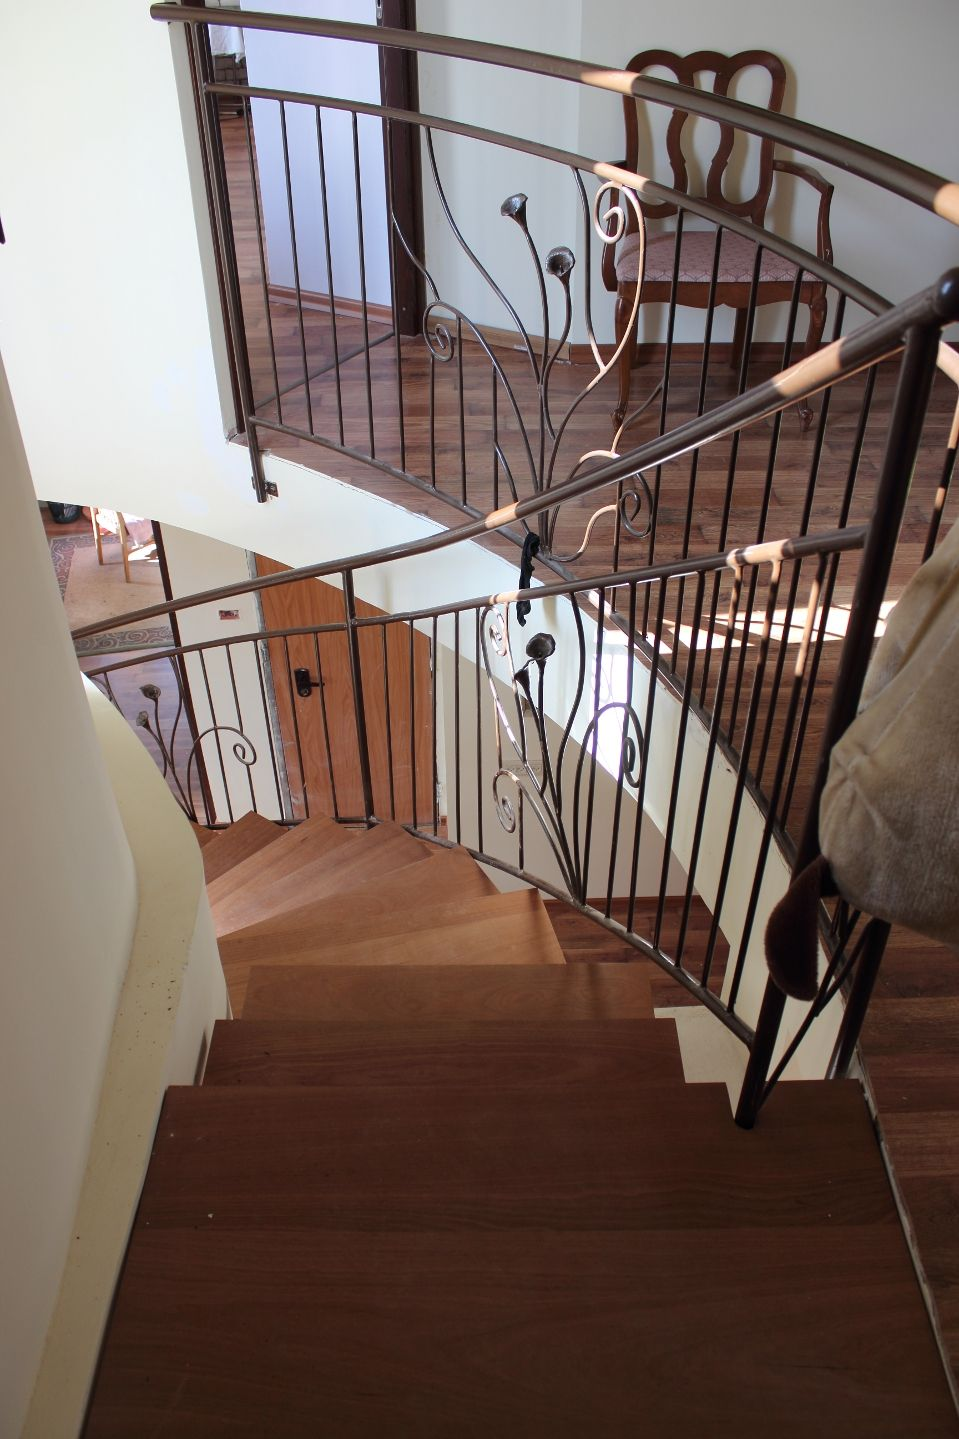 Wroughtiron staircase with mahogany stairs. Wrought